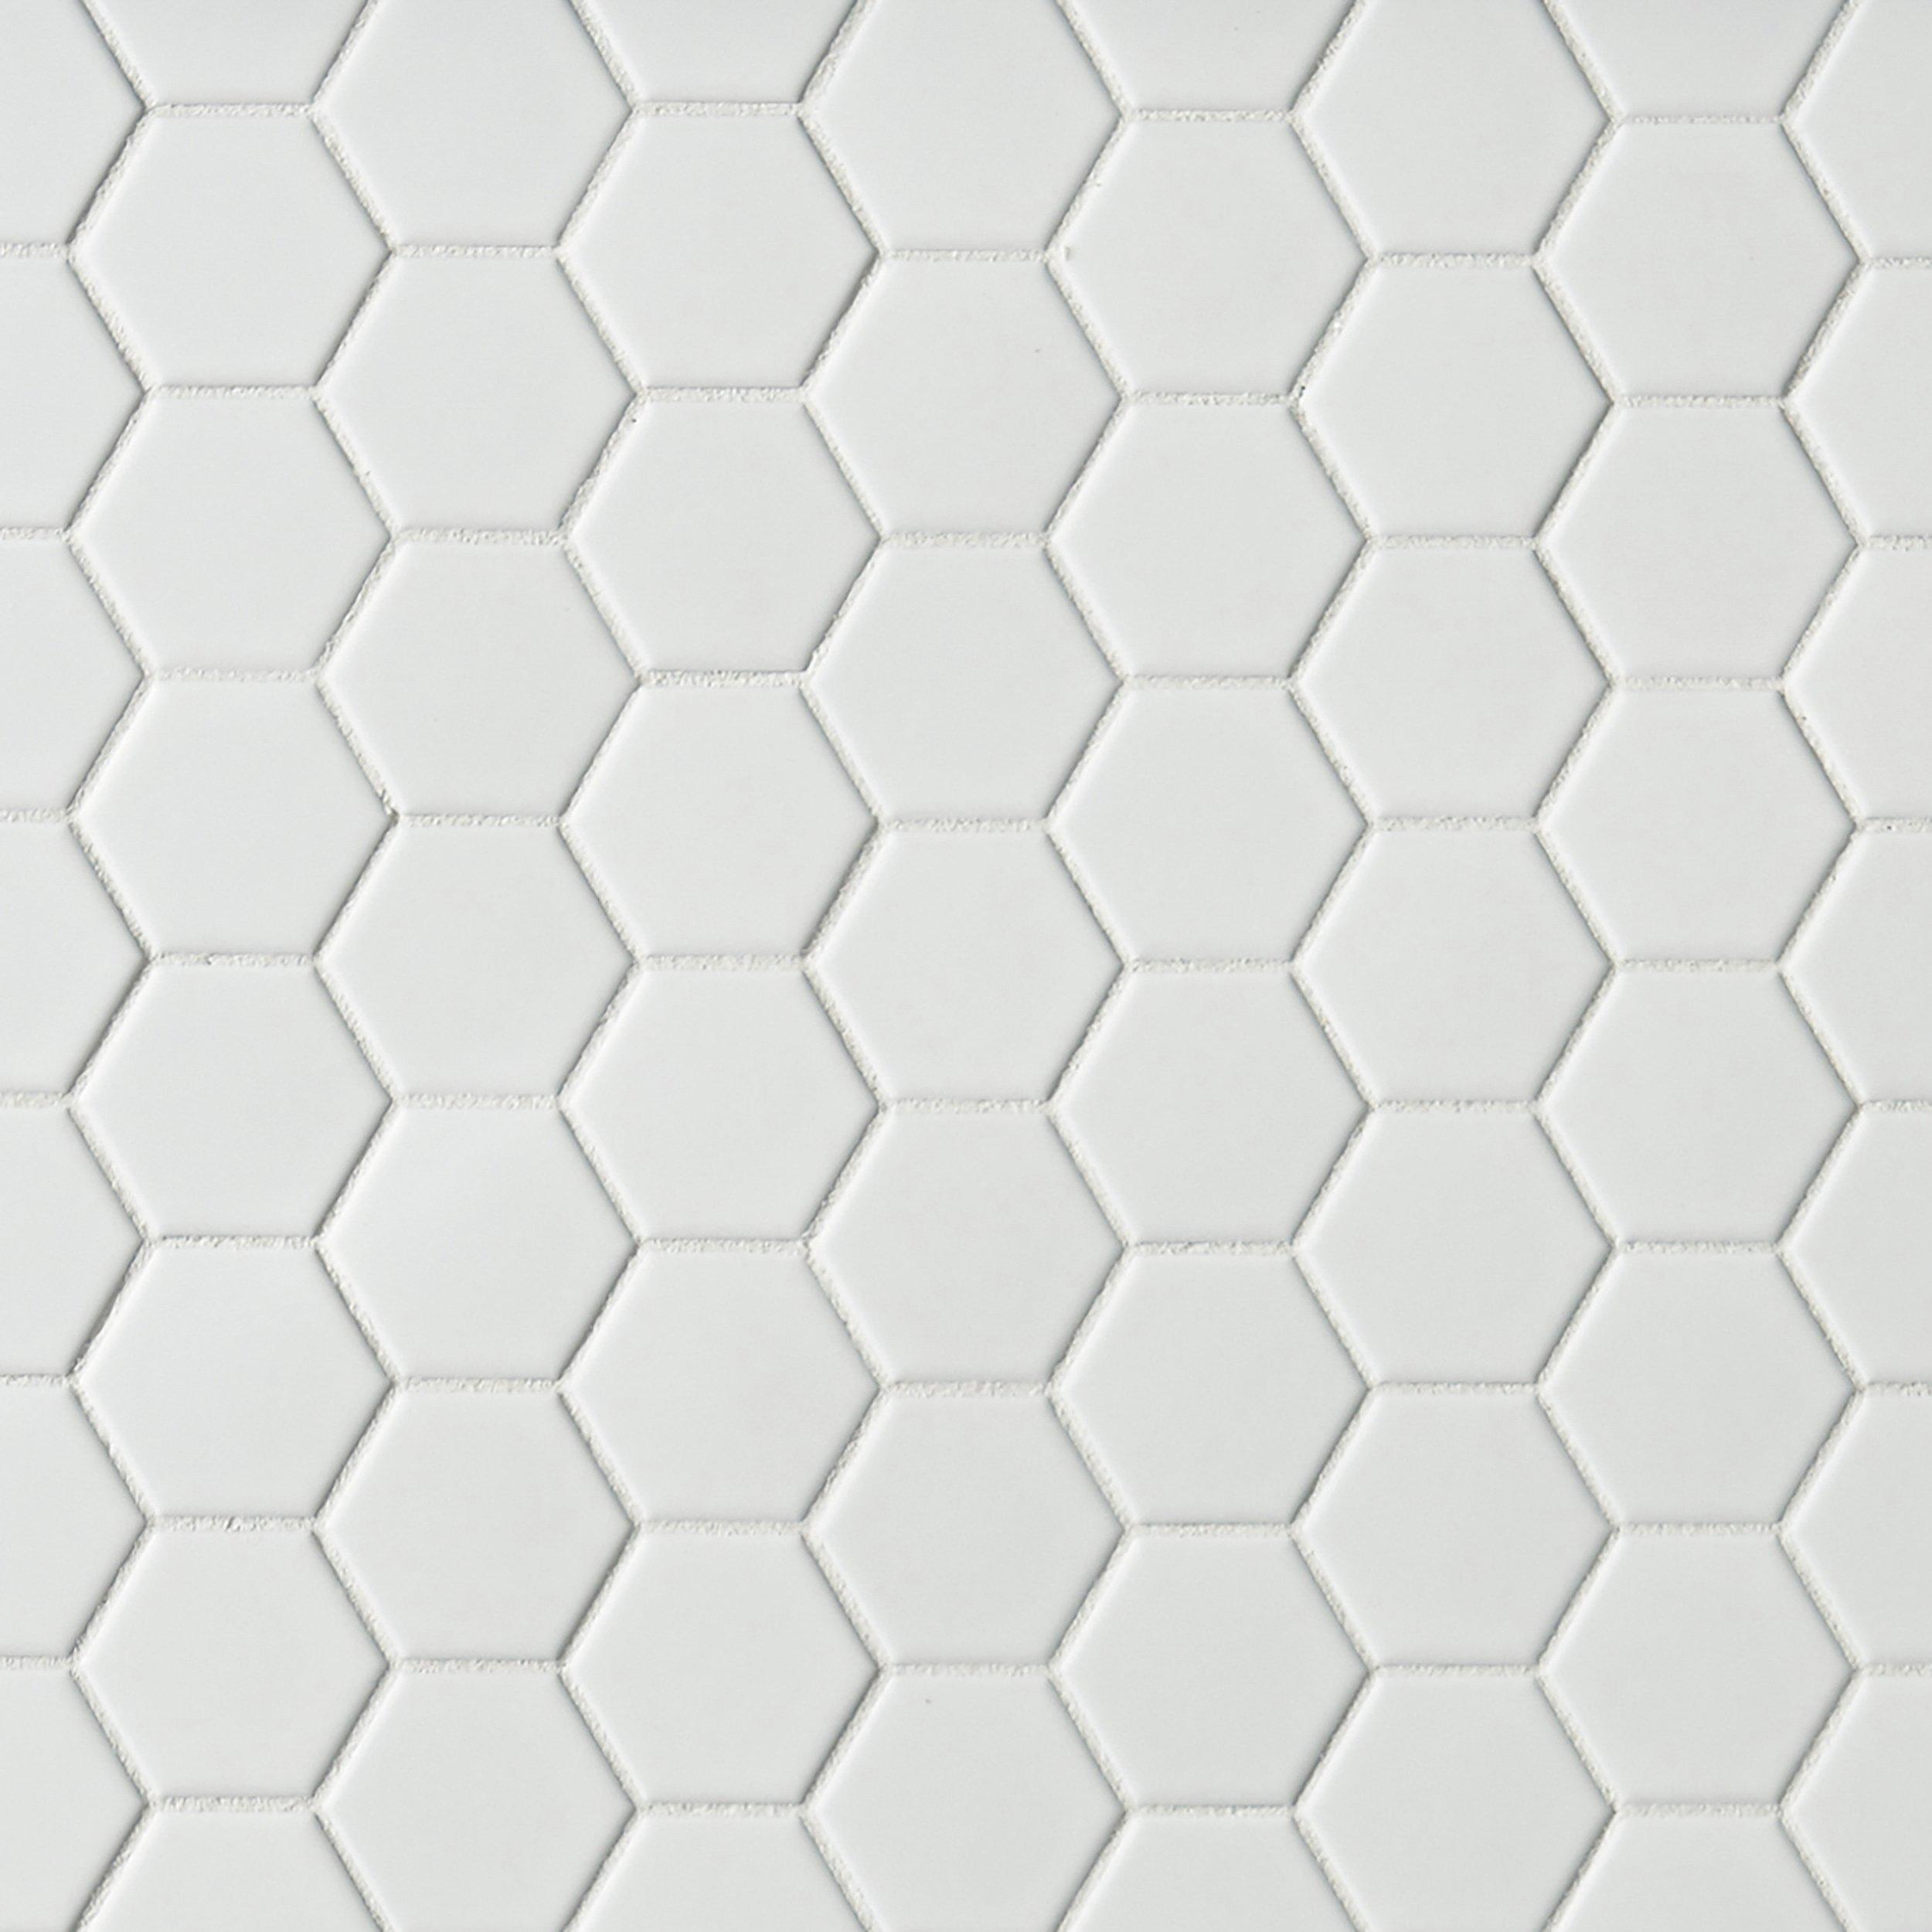 Hexagon Floor Tile Full Size Of Black And White Linoleum